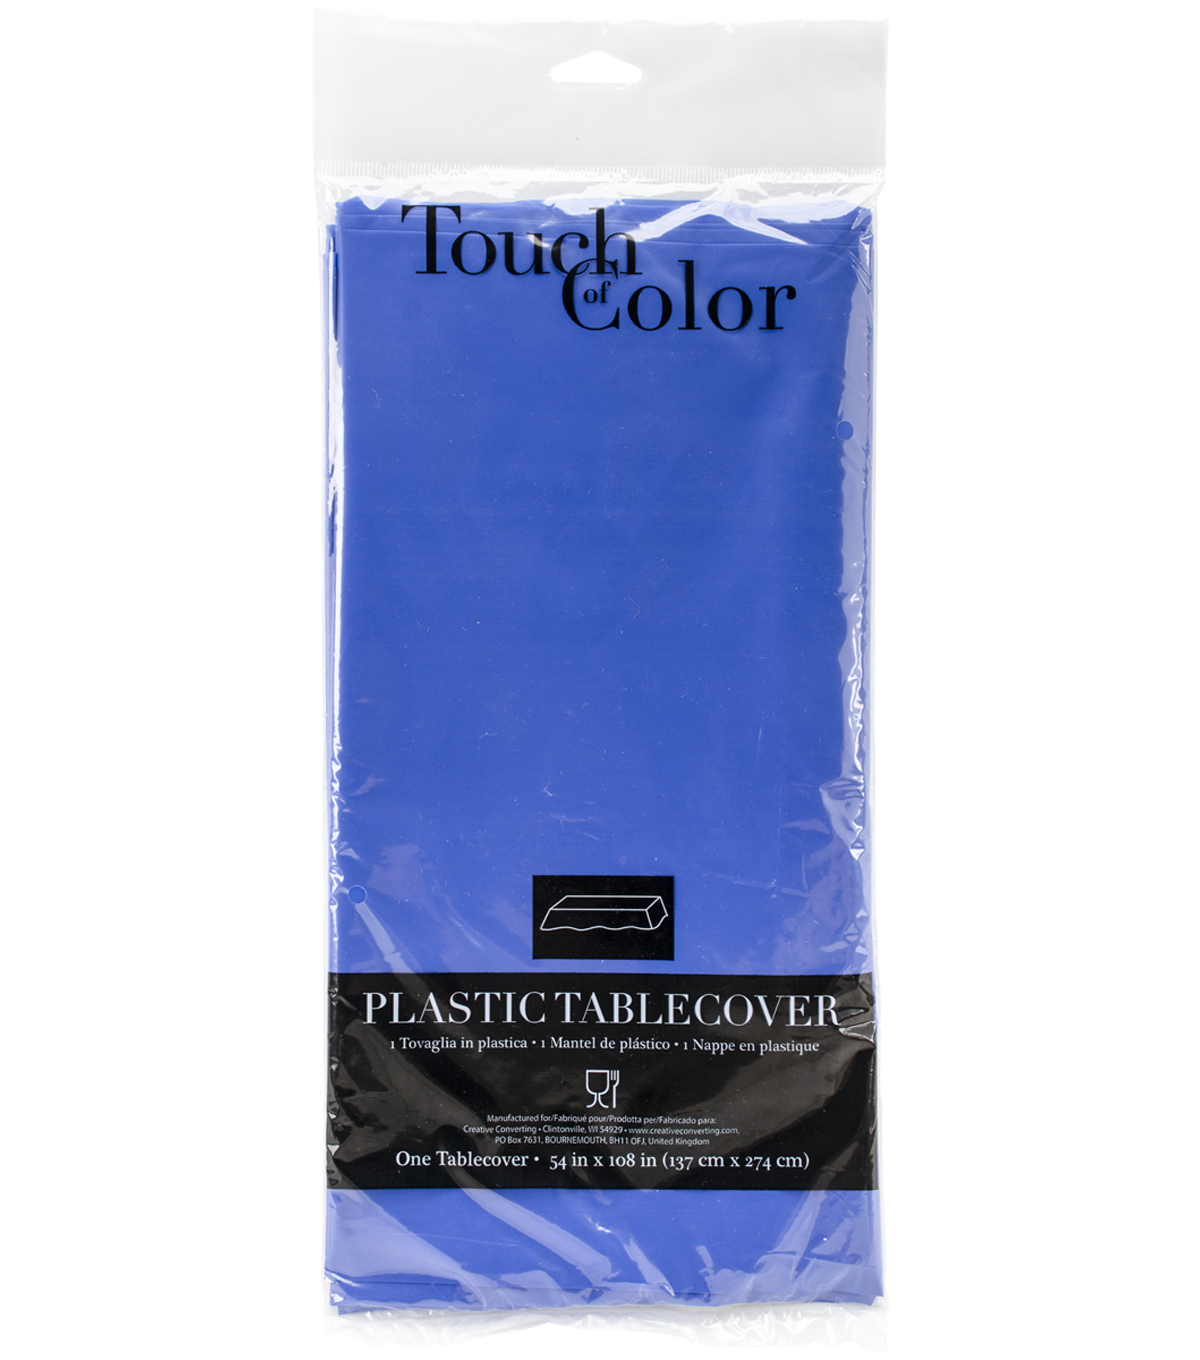 Touch Of Color Plastic Tablecover